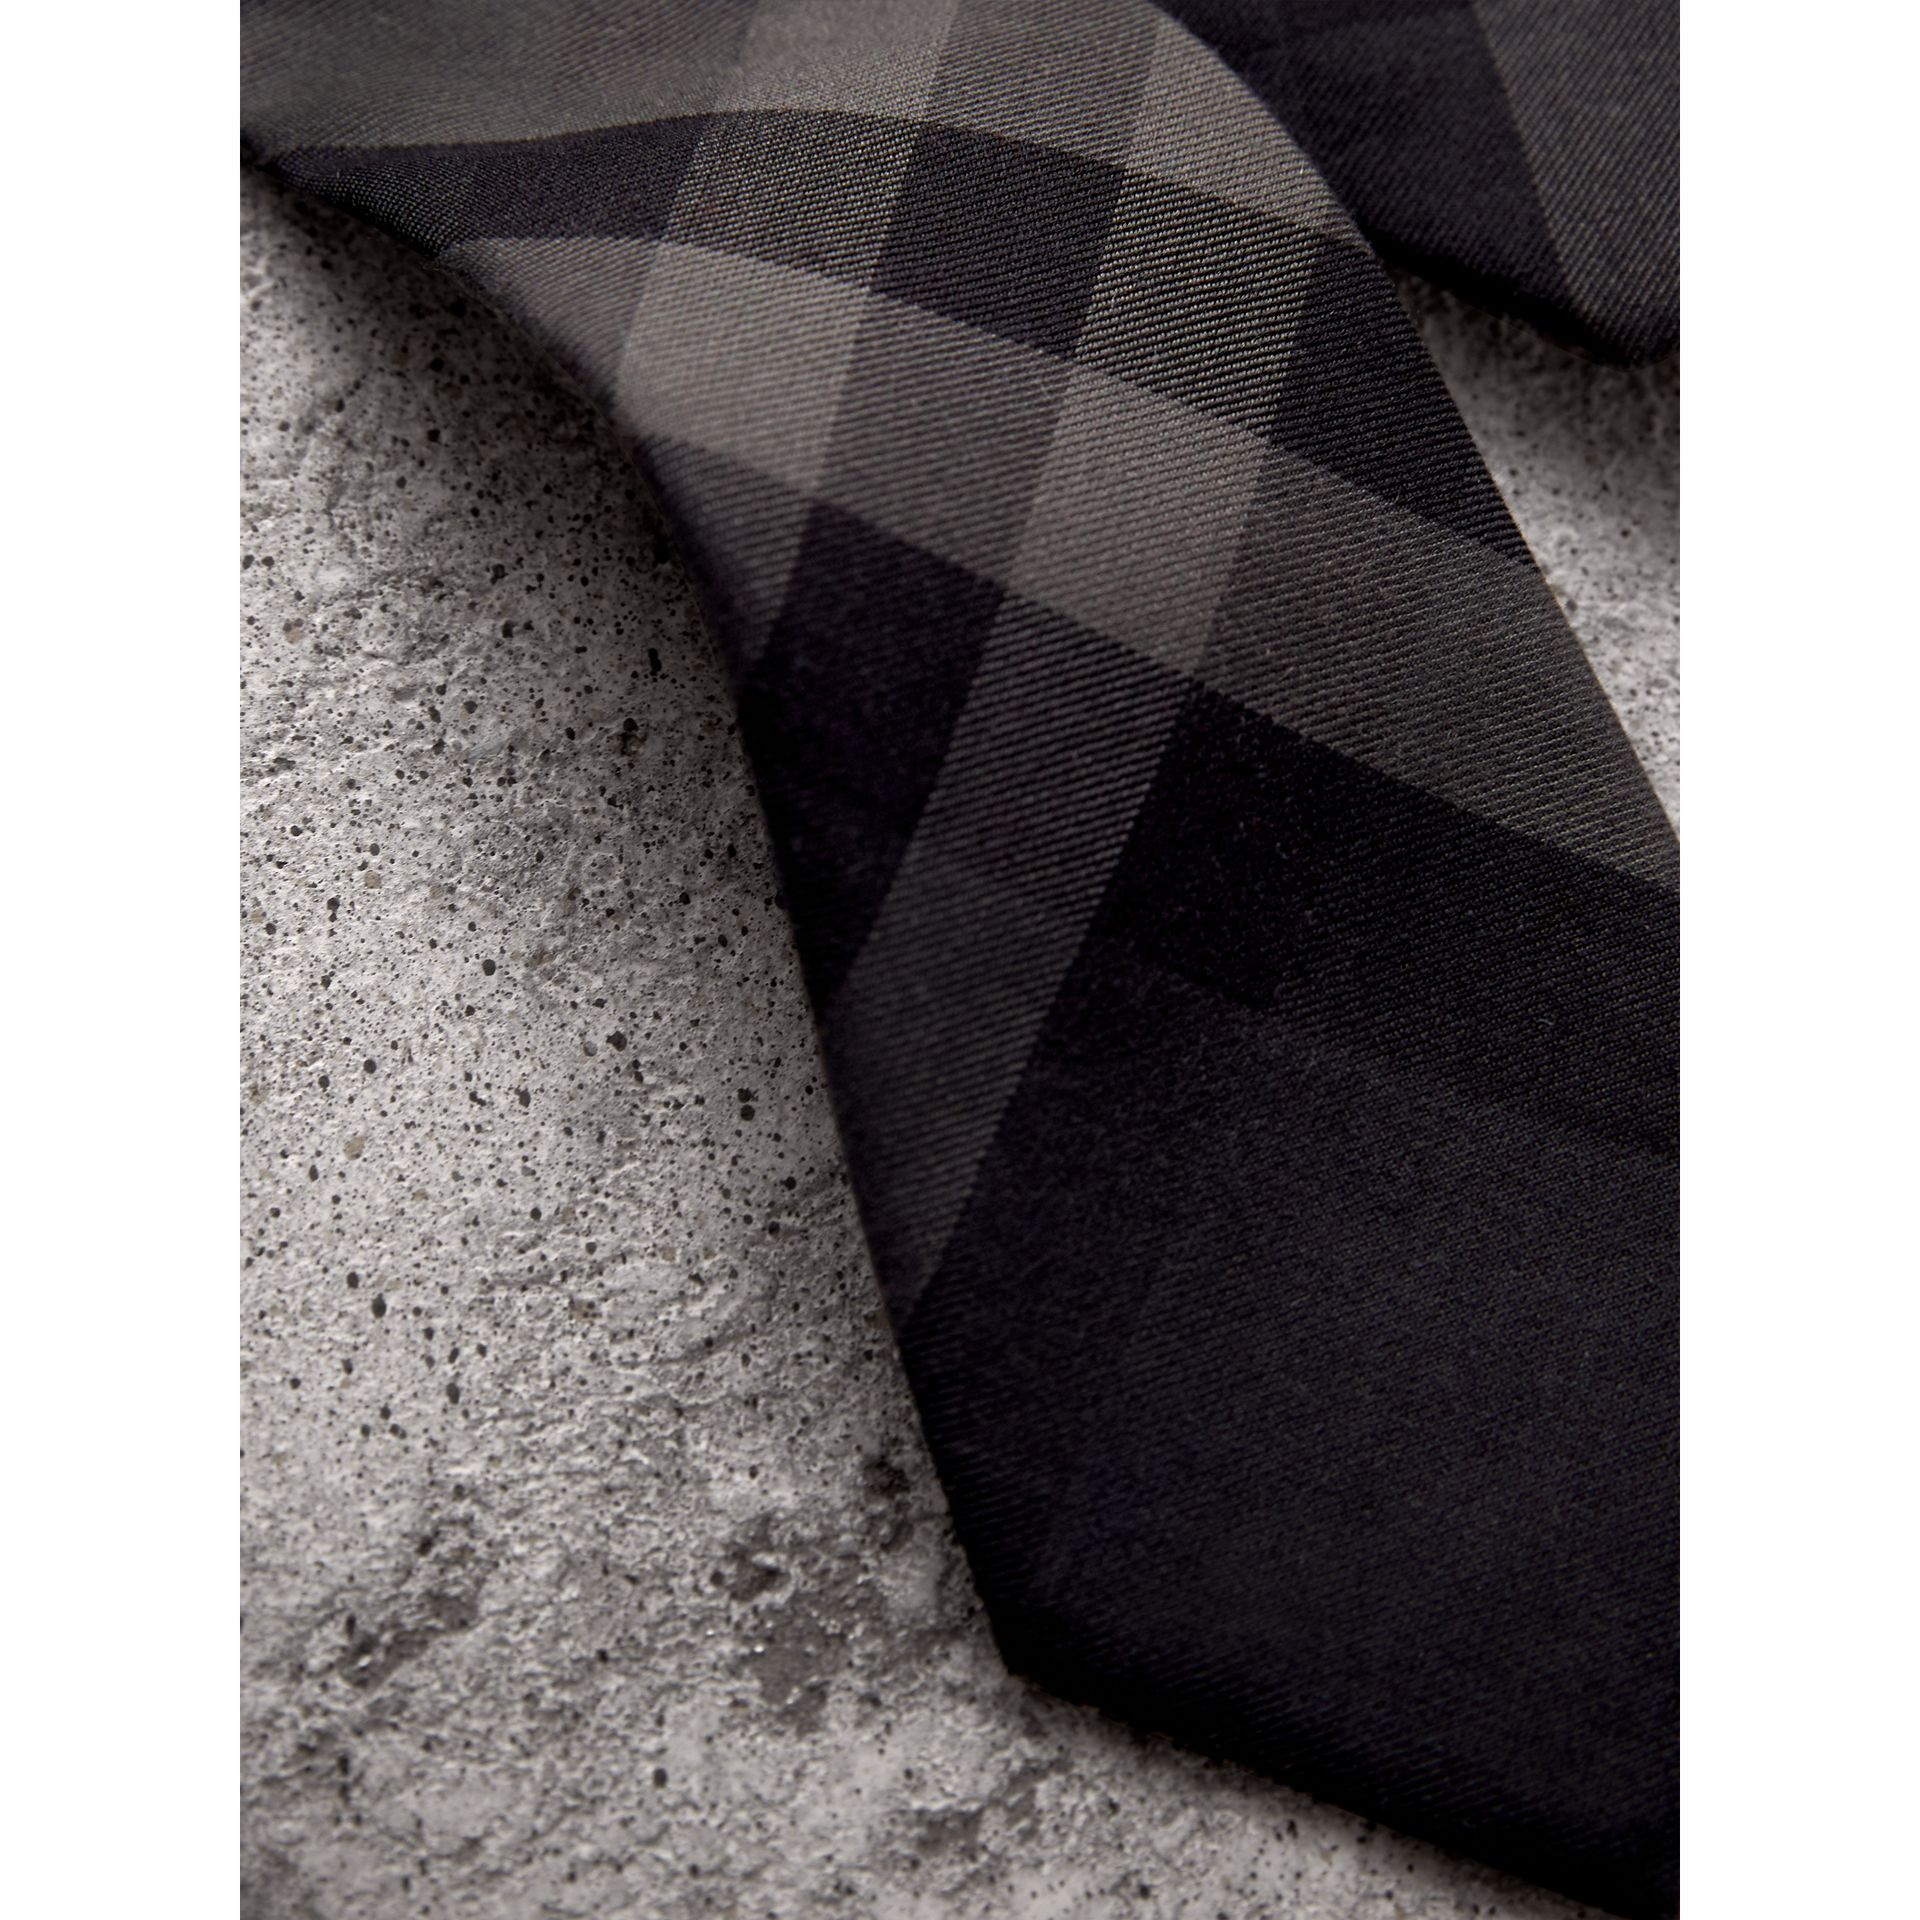 Modern Cut Check Cotton Cashmere Tie in Charcoal - Men | Burberry United States - gallery image 1